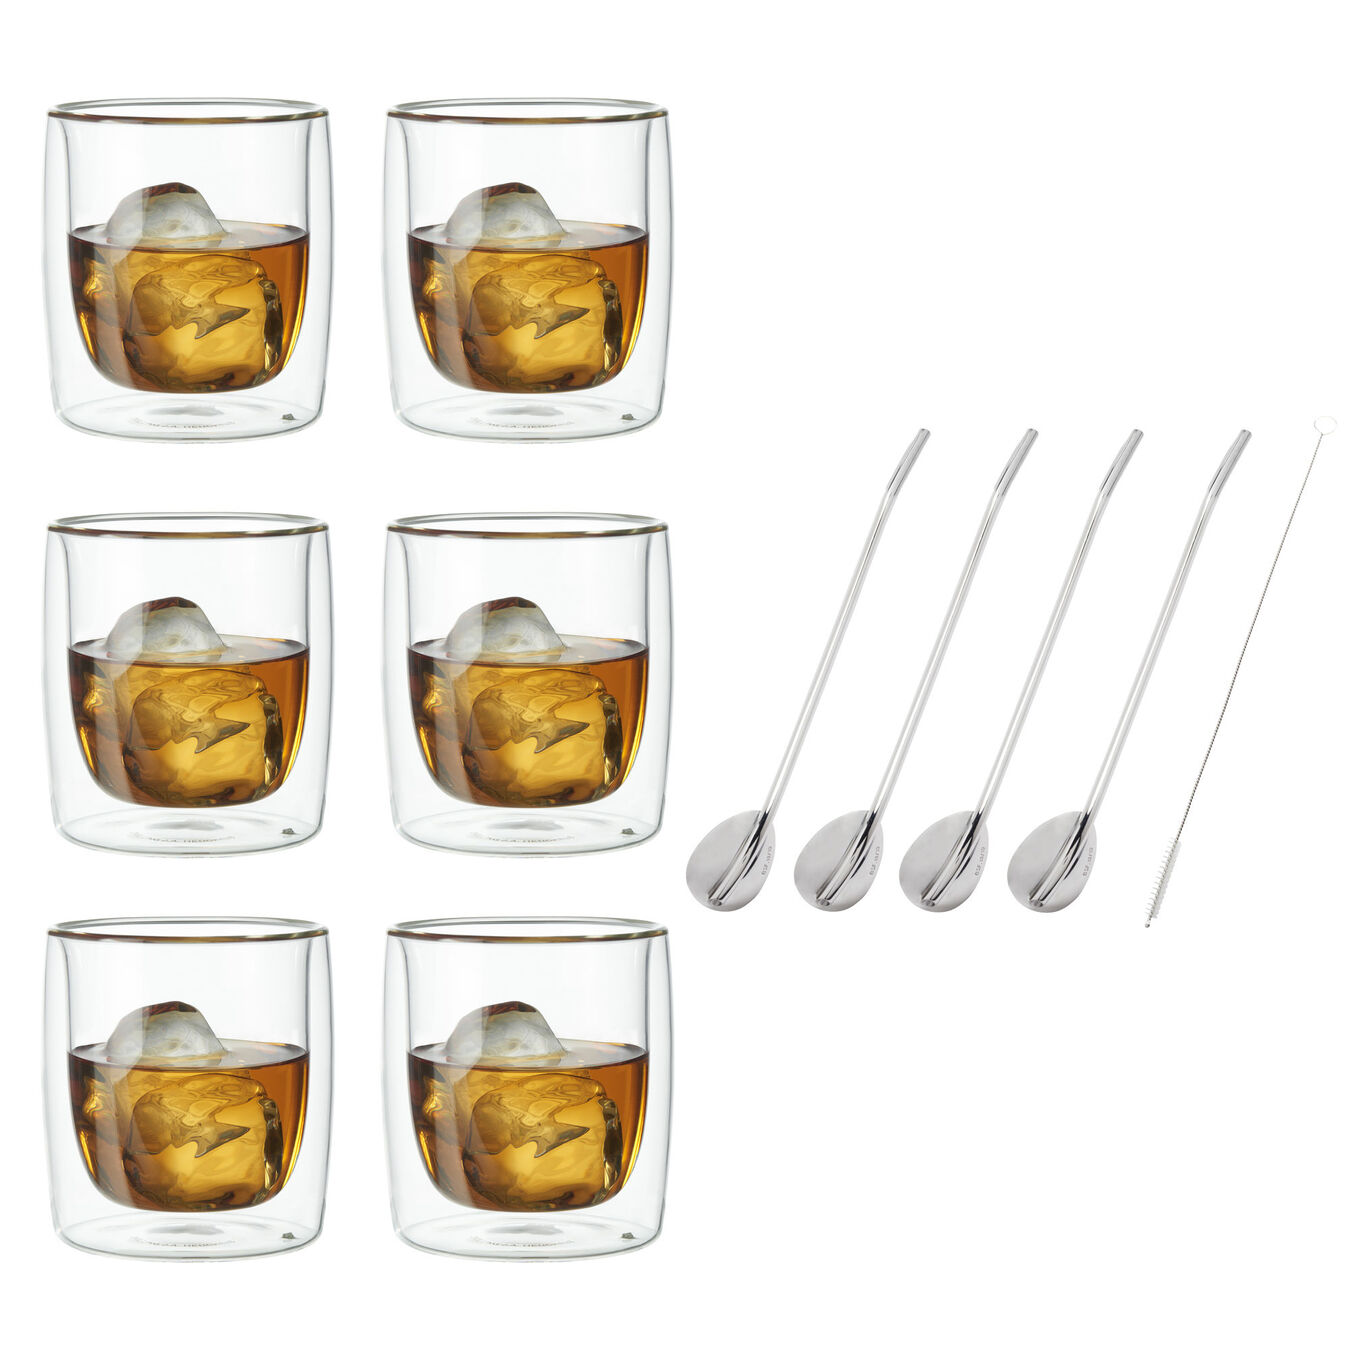 2-pc Whisky glass set, Double wall glas ,,large 2